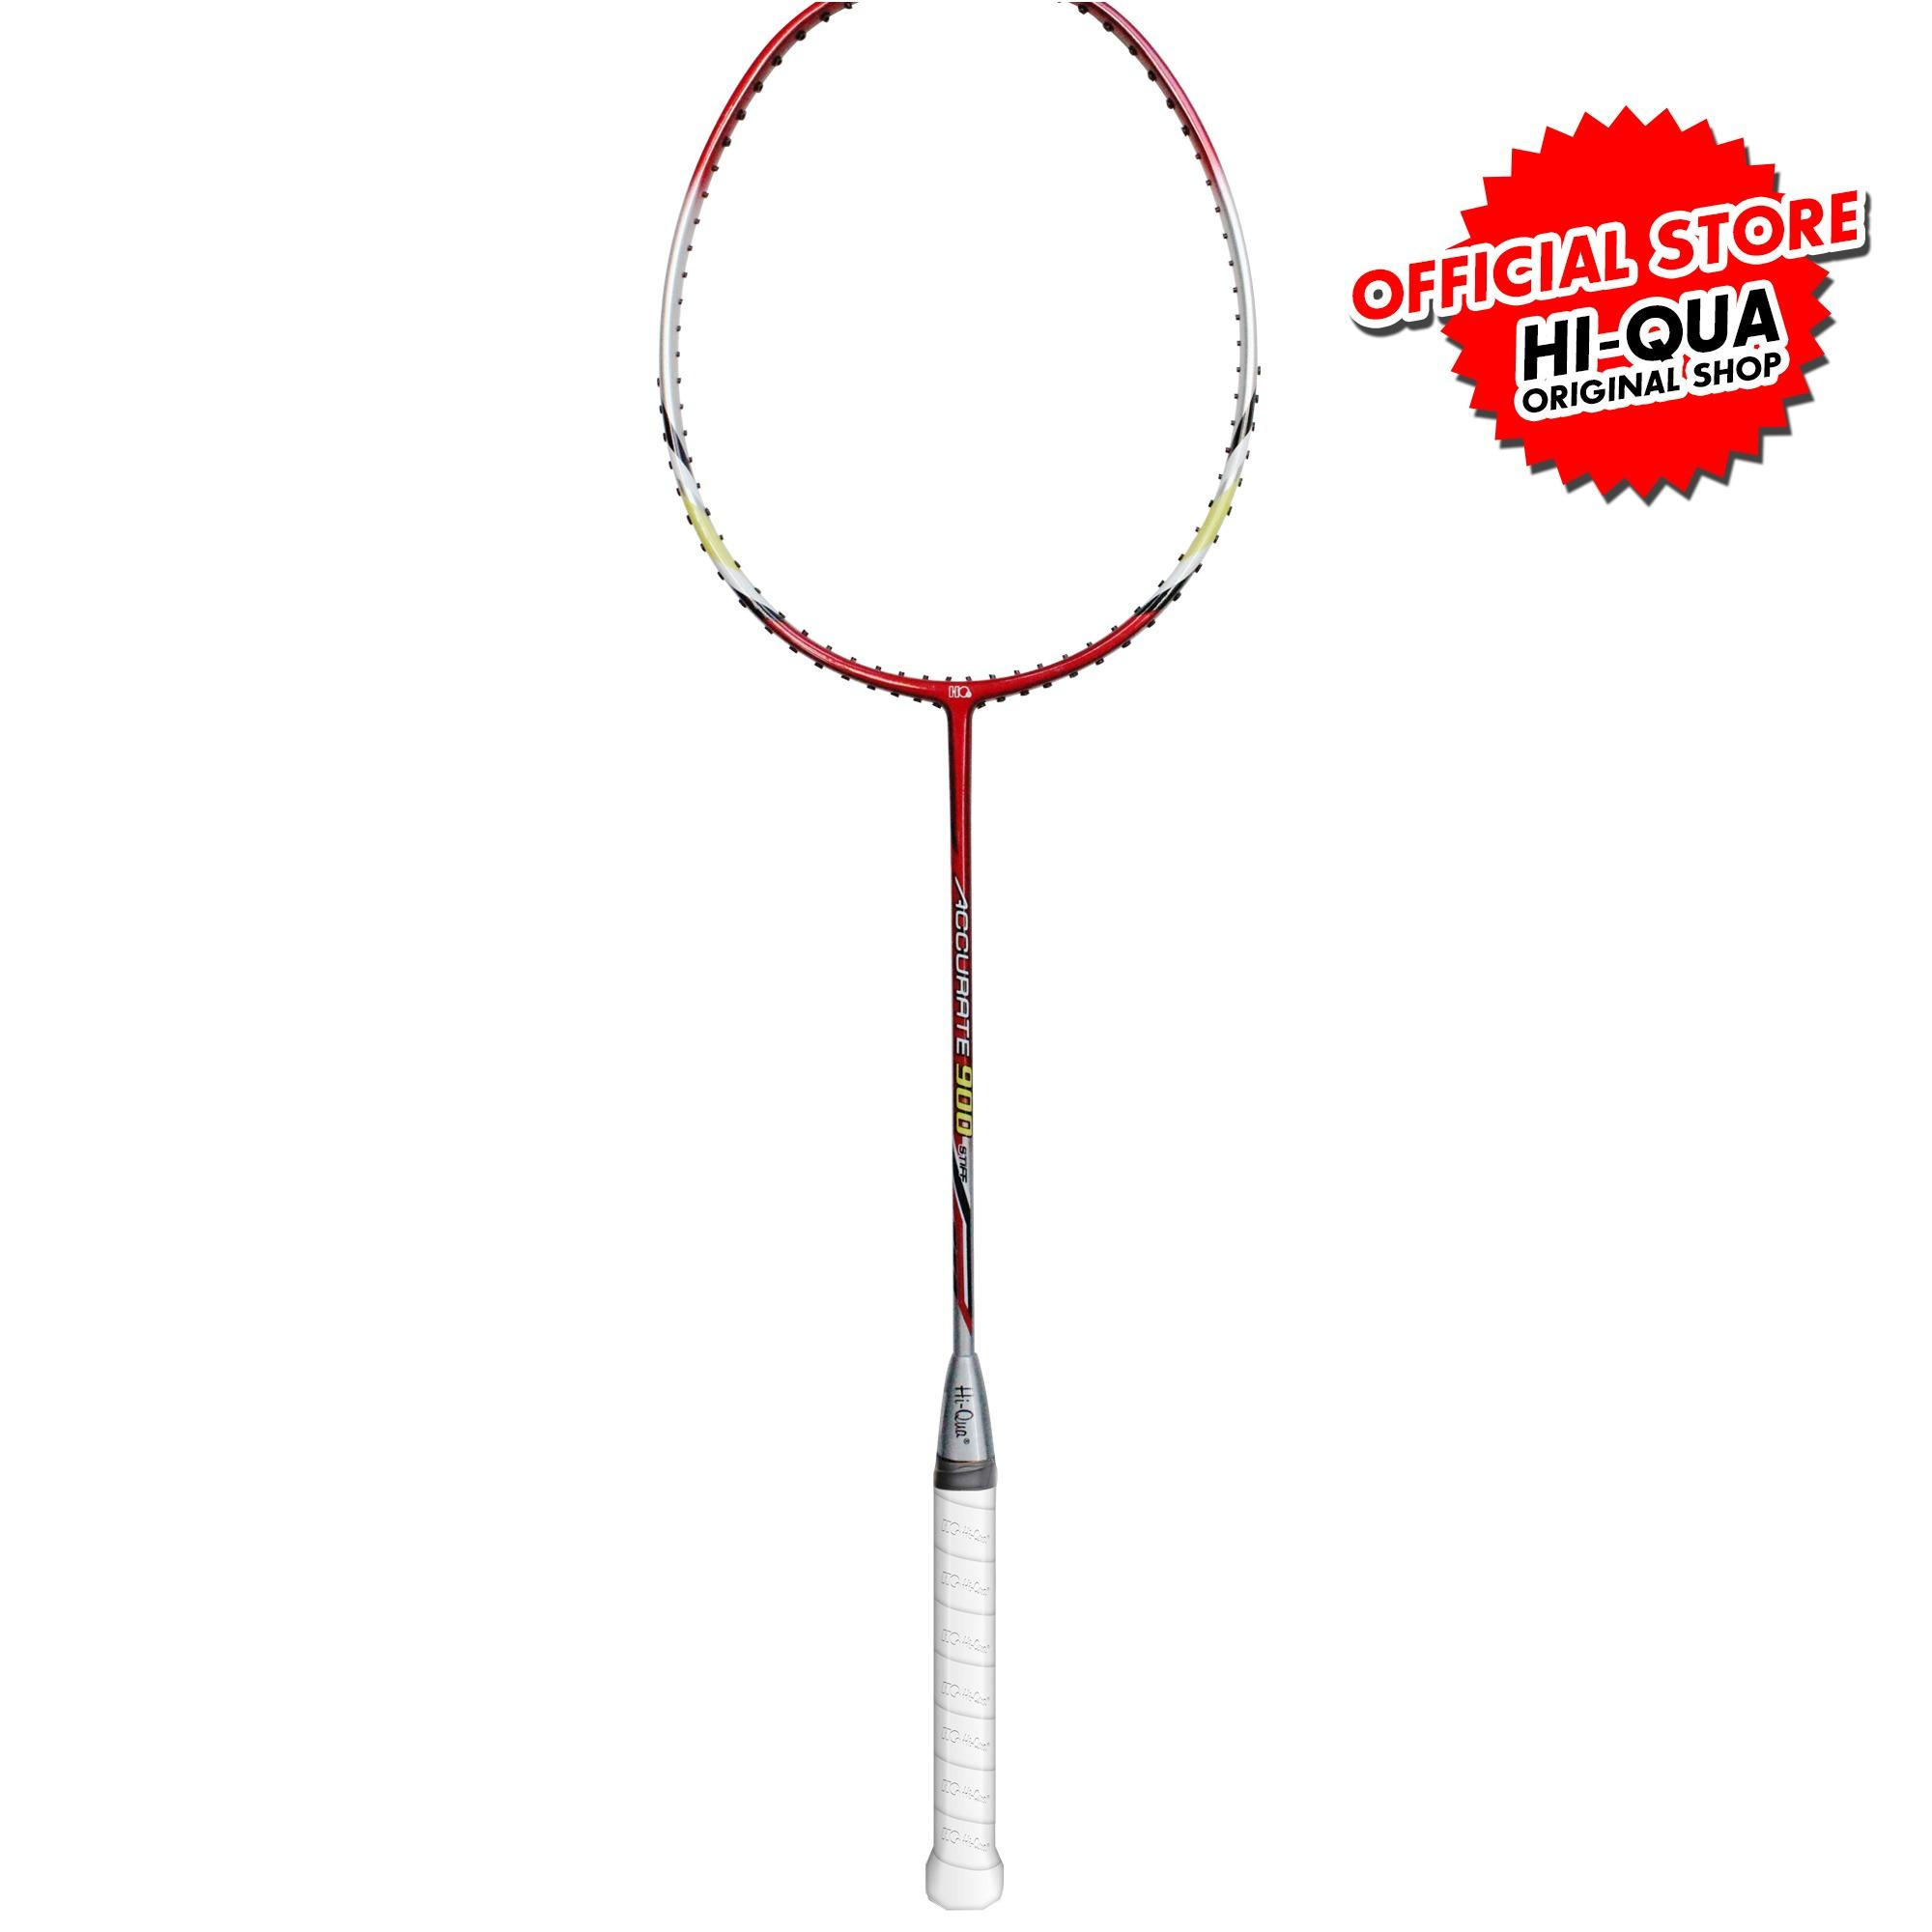 Jual Hi Qua Raket Bulutangkis Badminton Accurate Red Branded Original